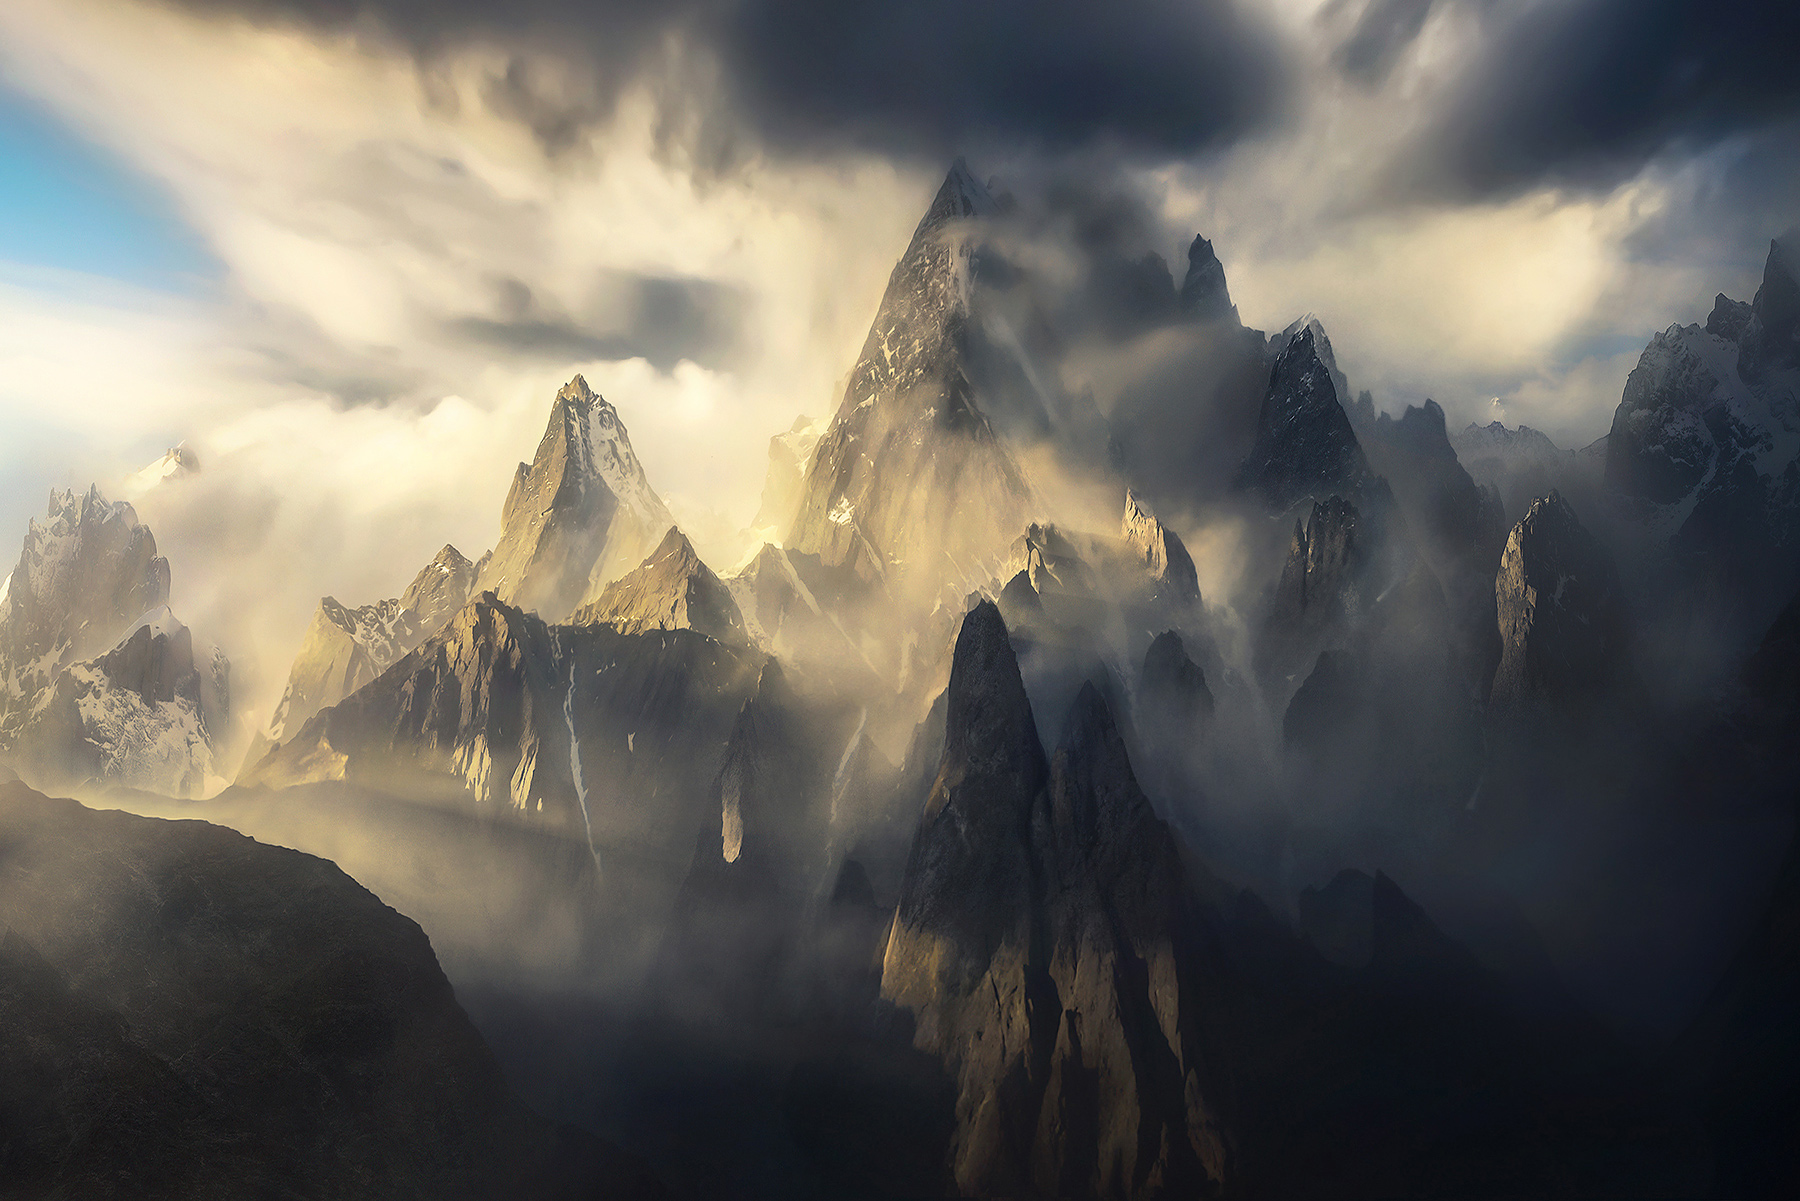 High towers and a clearing snowstorm from the Machulo Valley, Pakistan